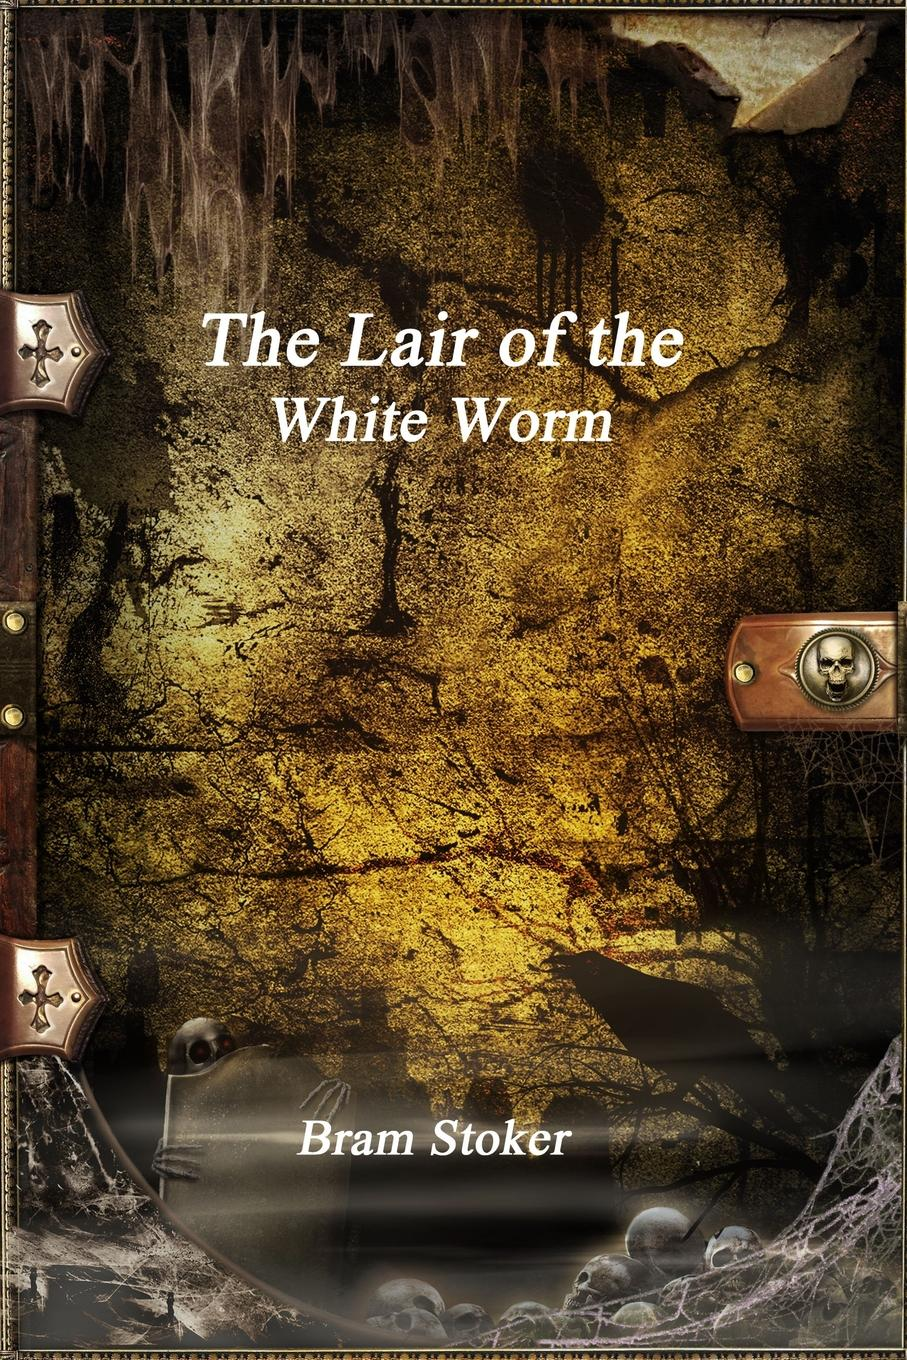 Bram Stoker The Lair of the White Worm